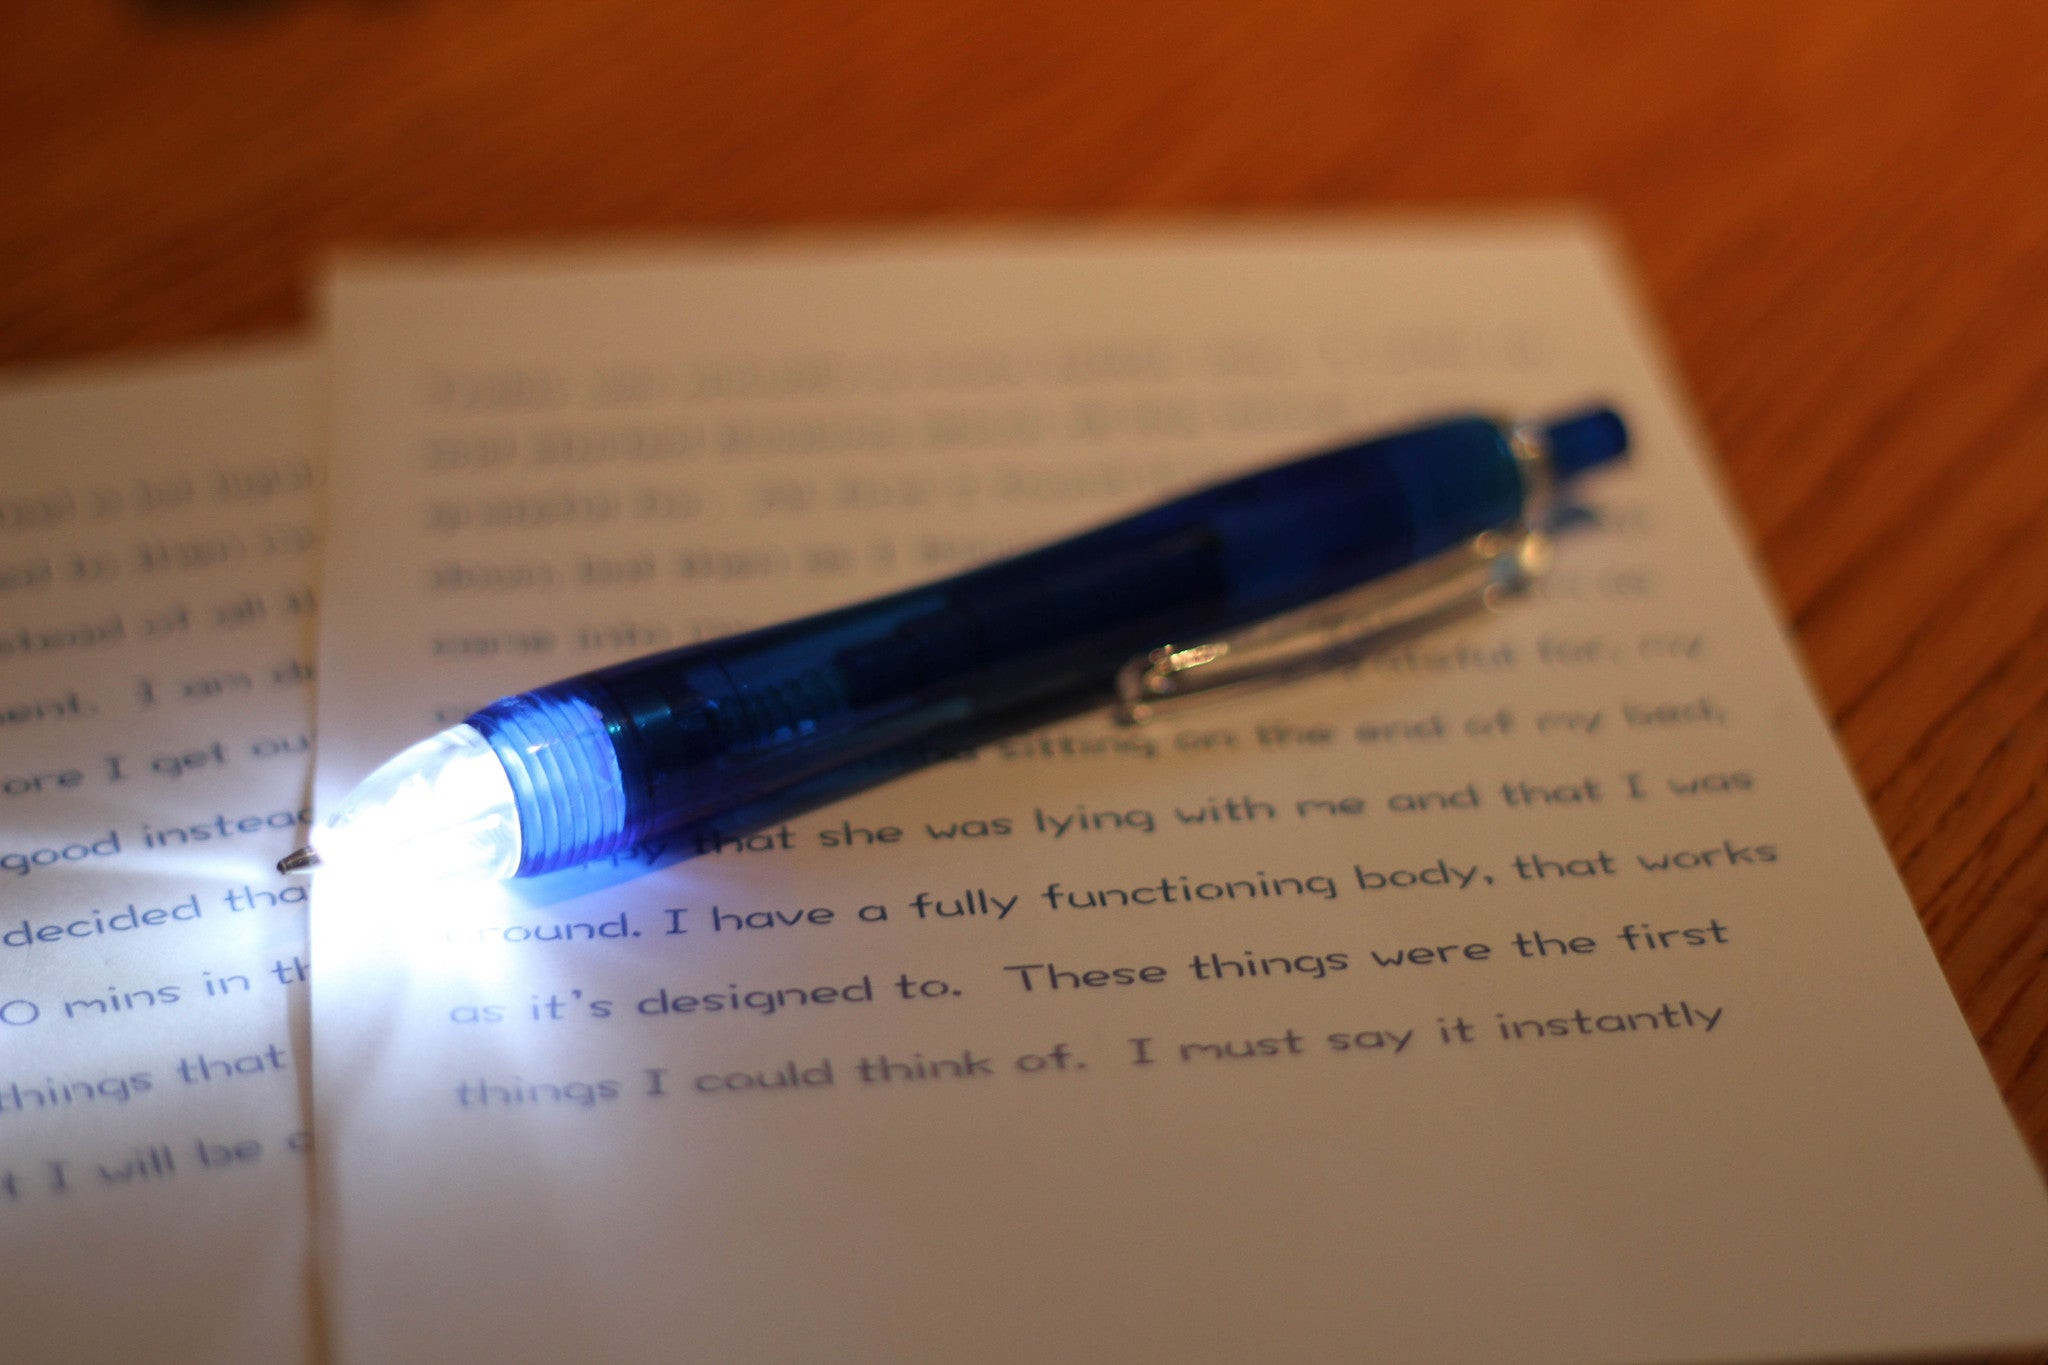 Pen with LED torch tip - Blue